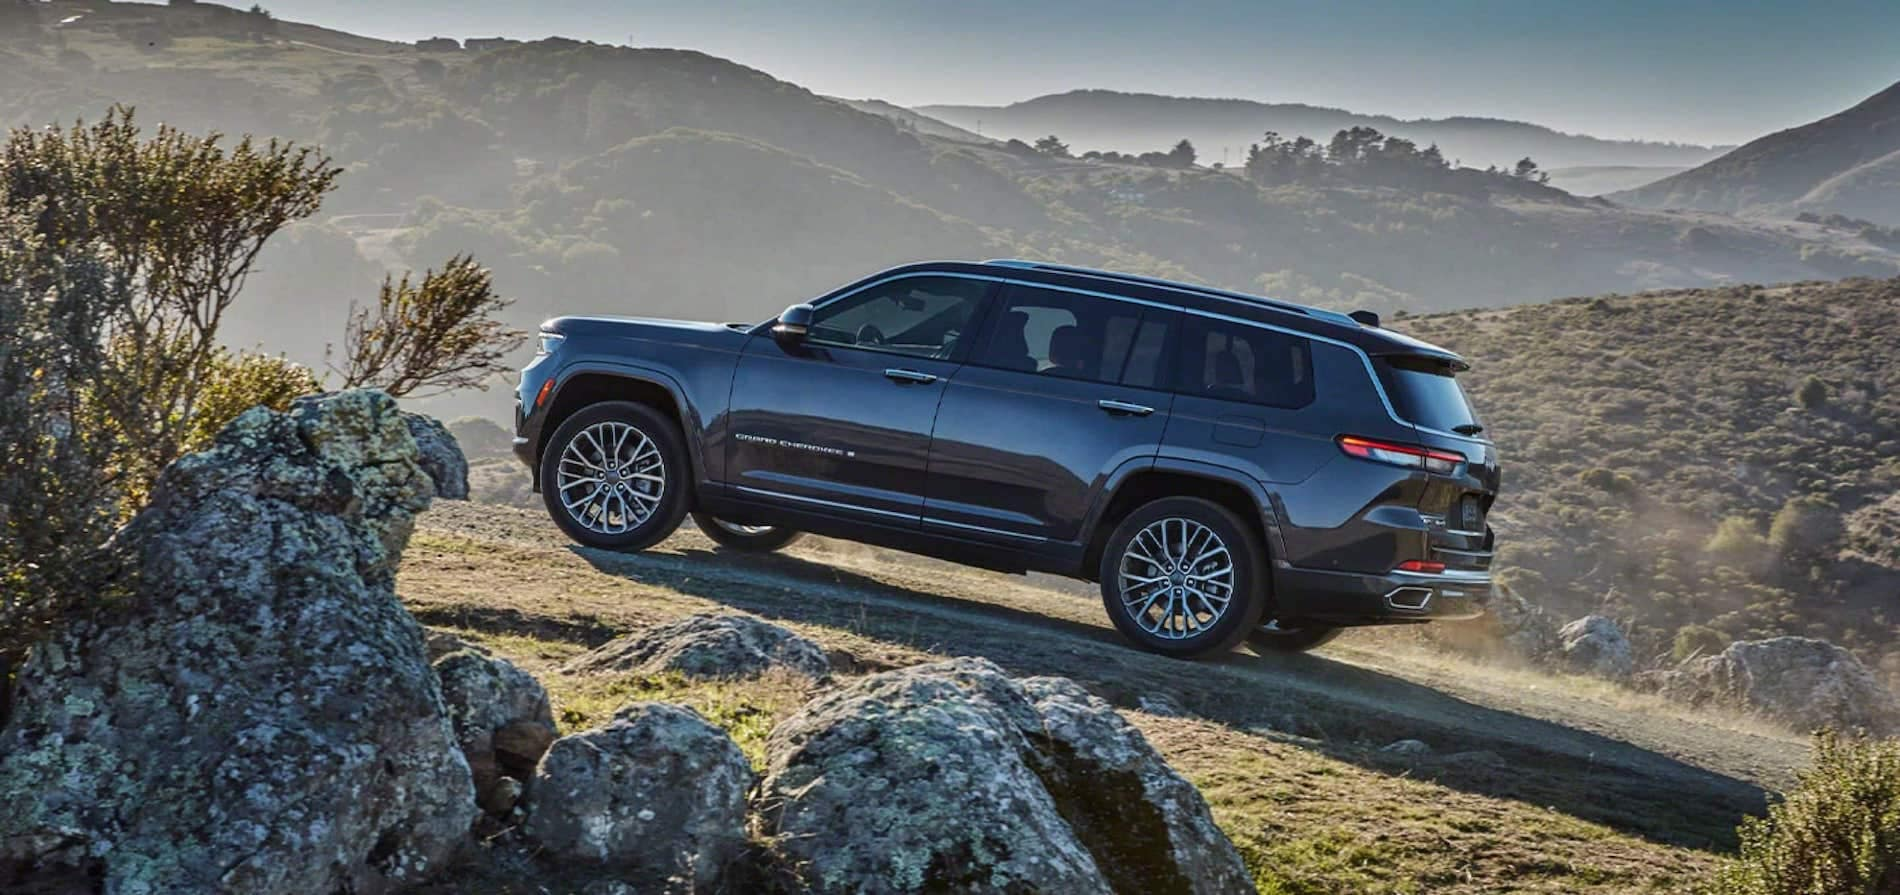 2021-Grand-Cherokee-L-3-Row-Safety-And-Security-Features available Warrenton, VA